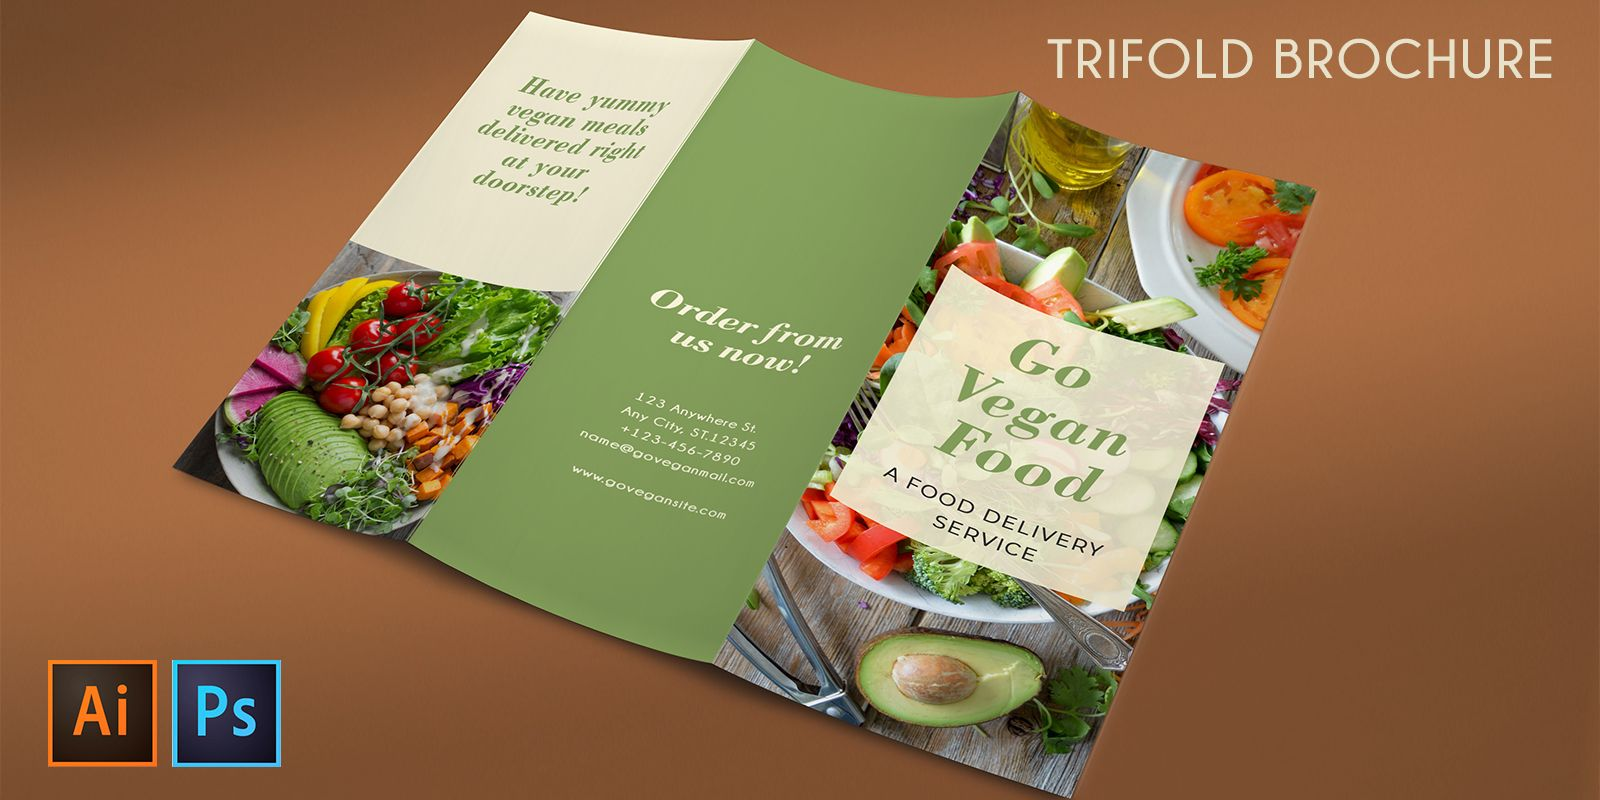 Trifold Vegan Food Brochure - 2 Templates Screenshot 6